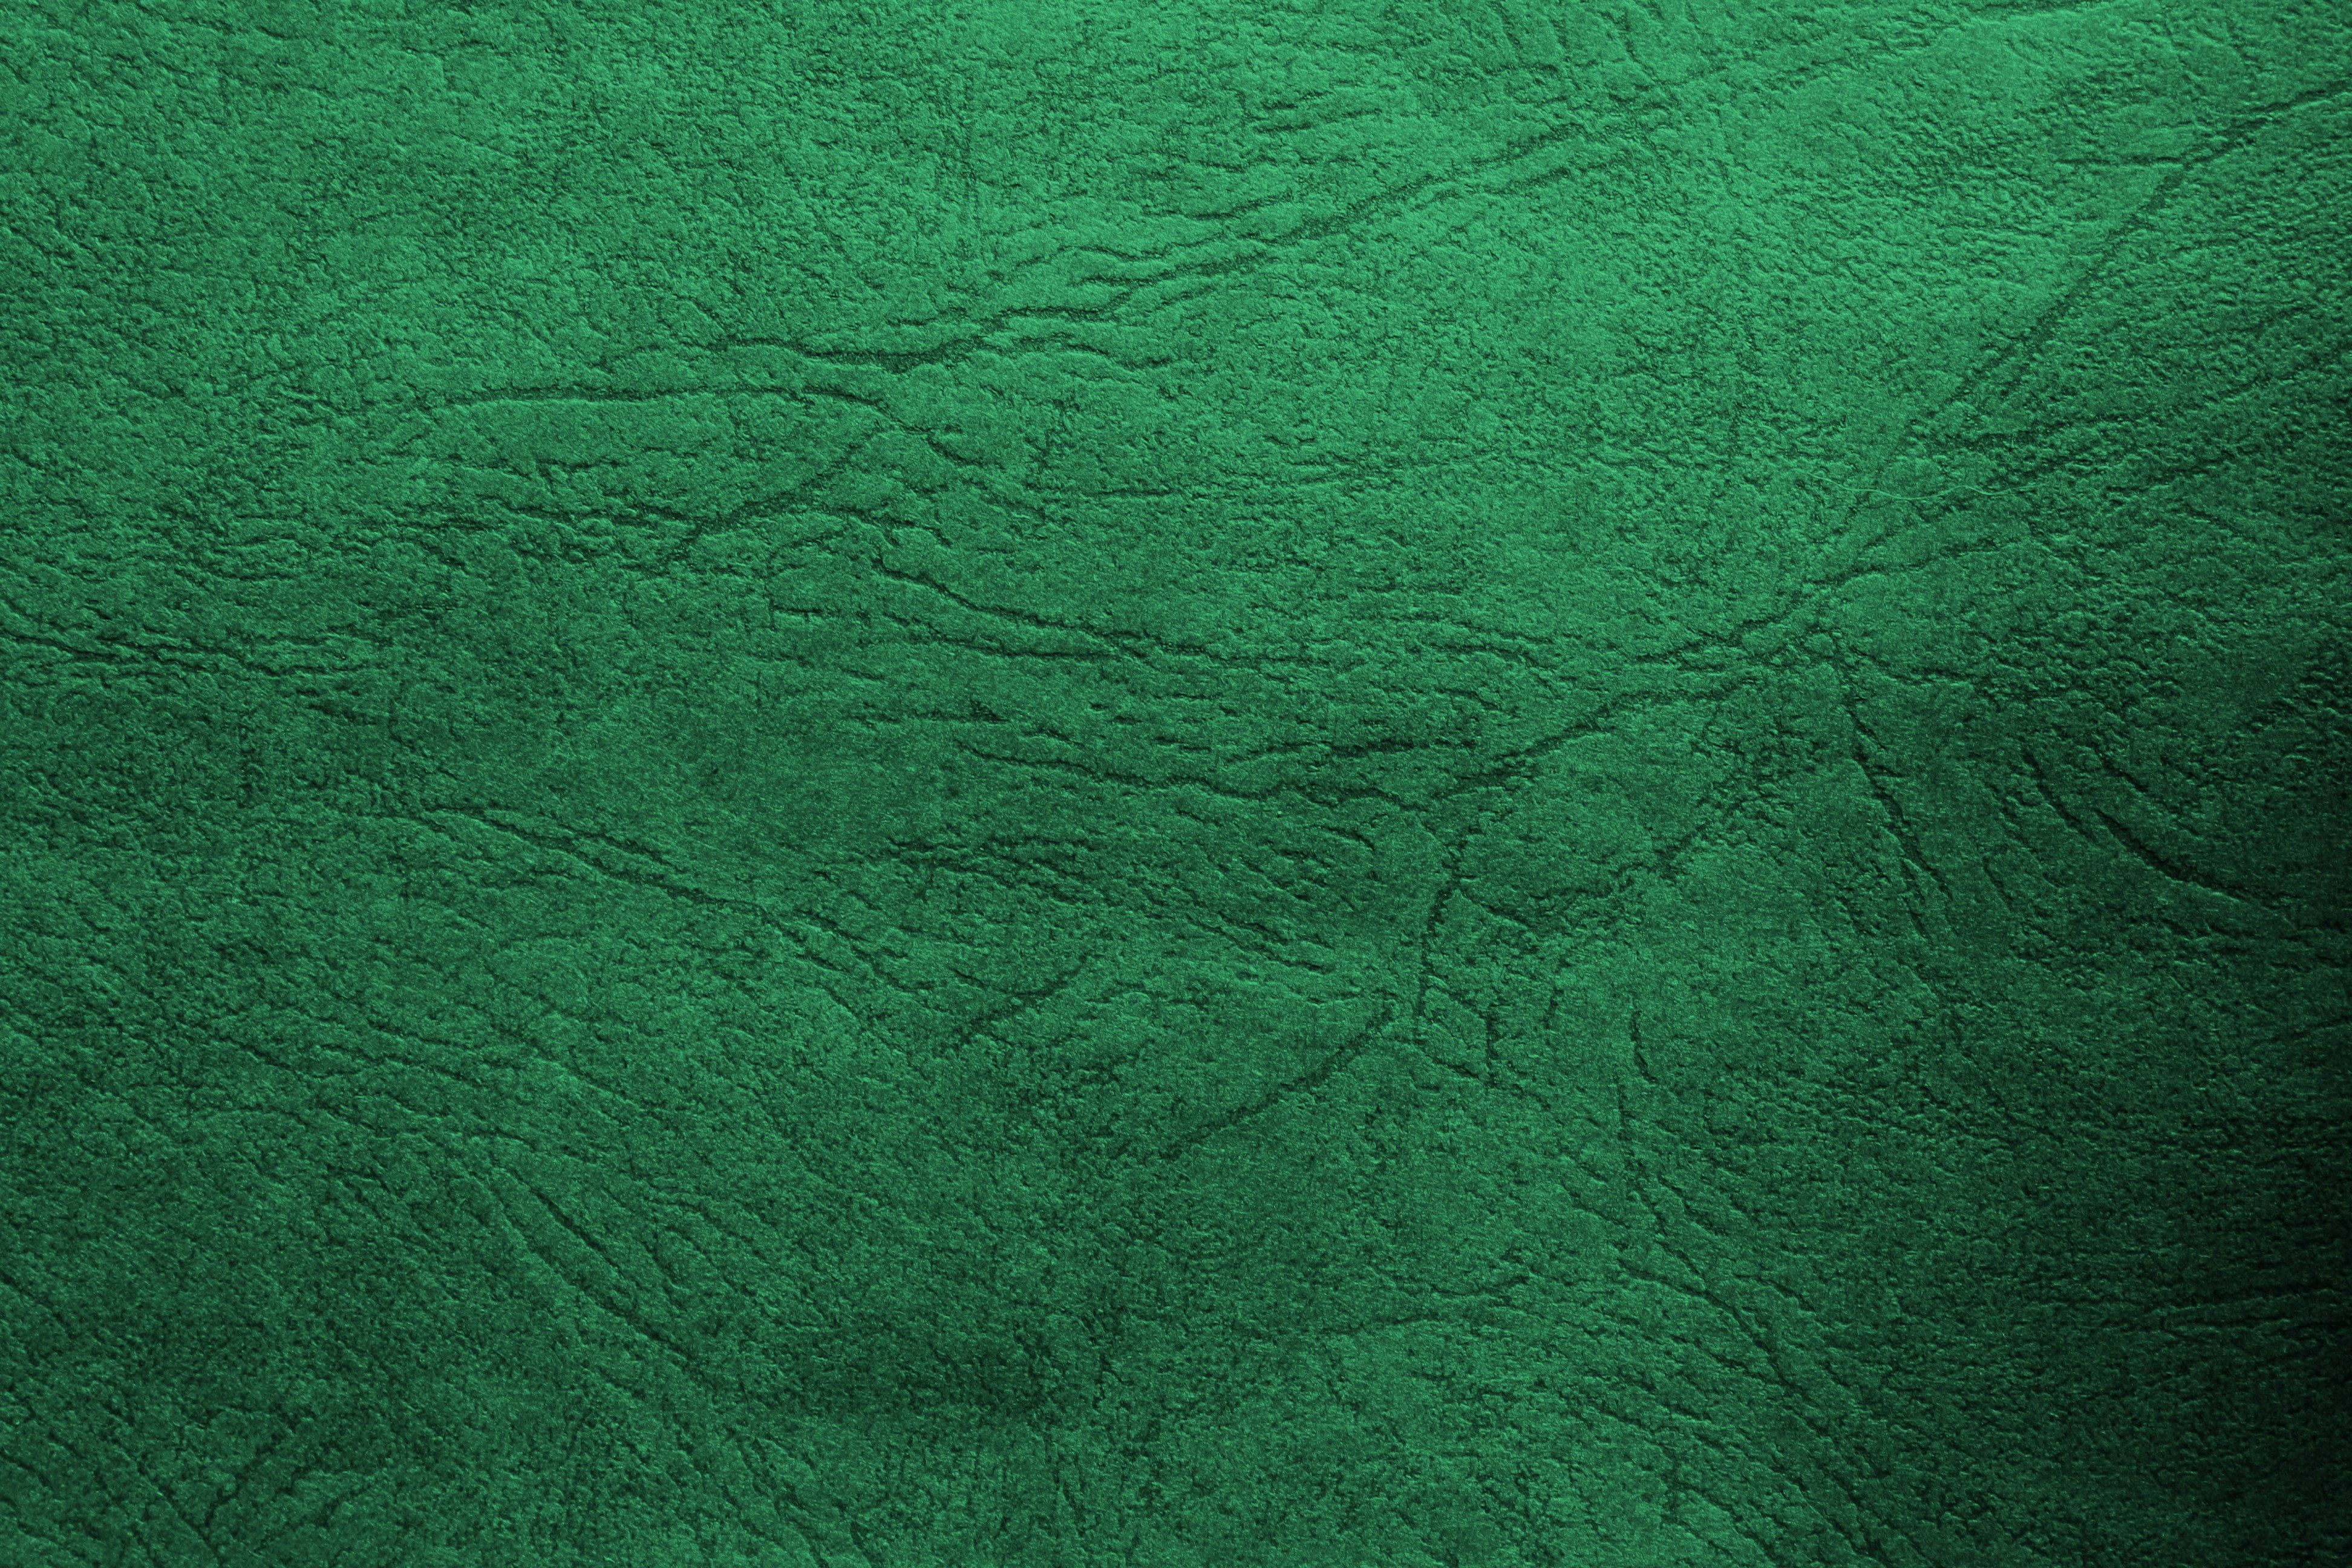 green texture wallpaper from - photo #19